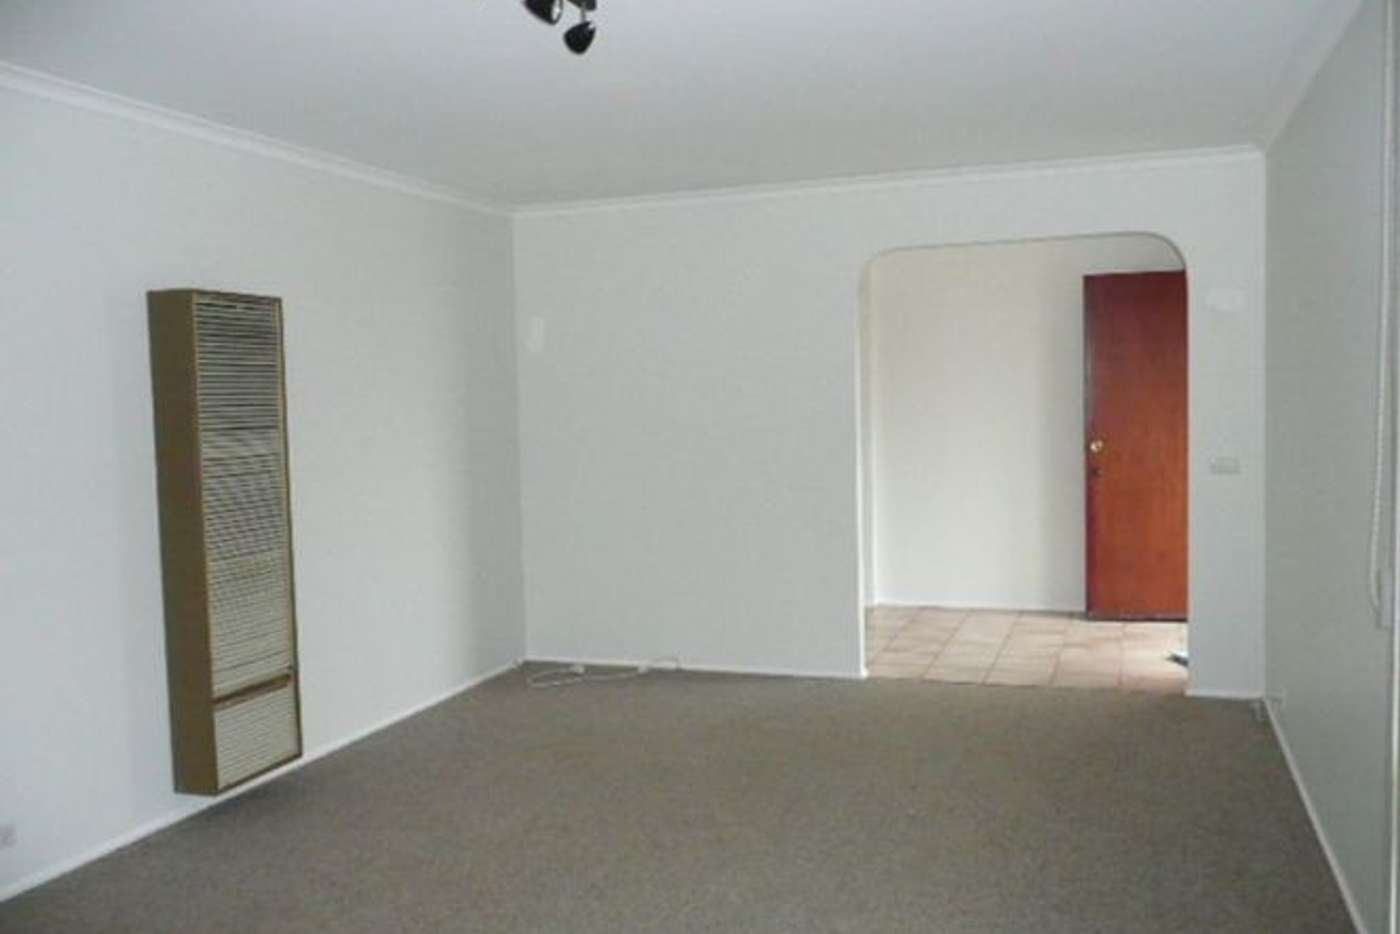 Sixth view of Homely house listing, 31 Eastwood Cres, Mooroolbark VIC 3138